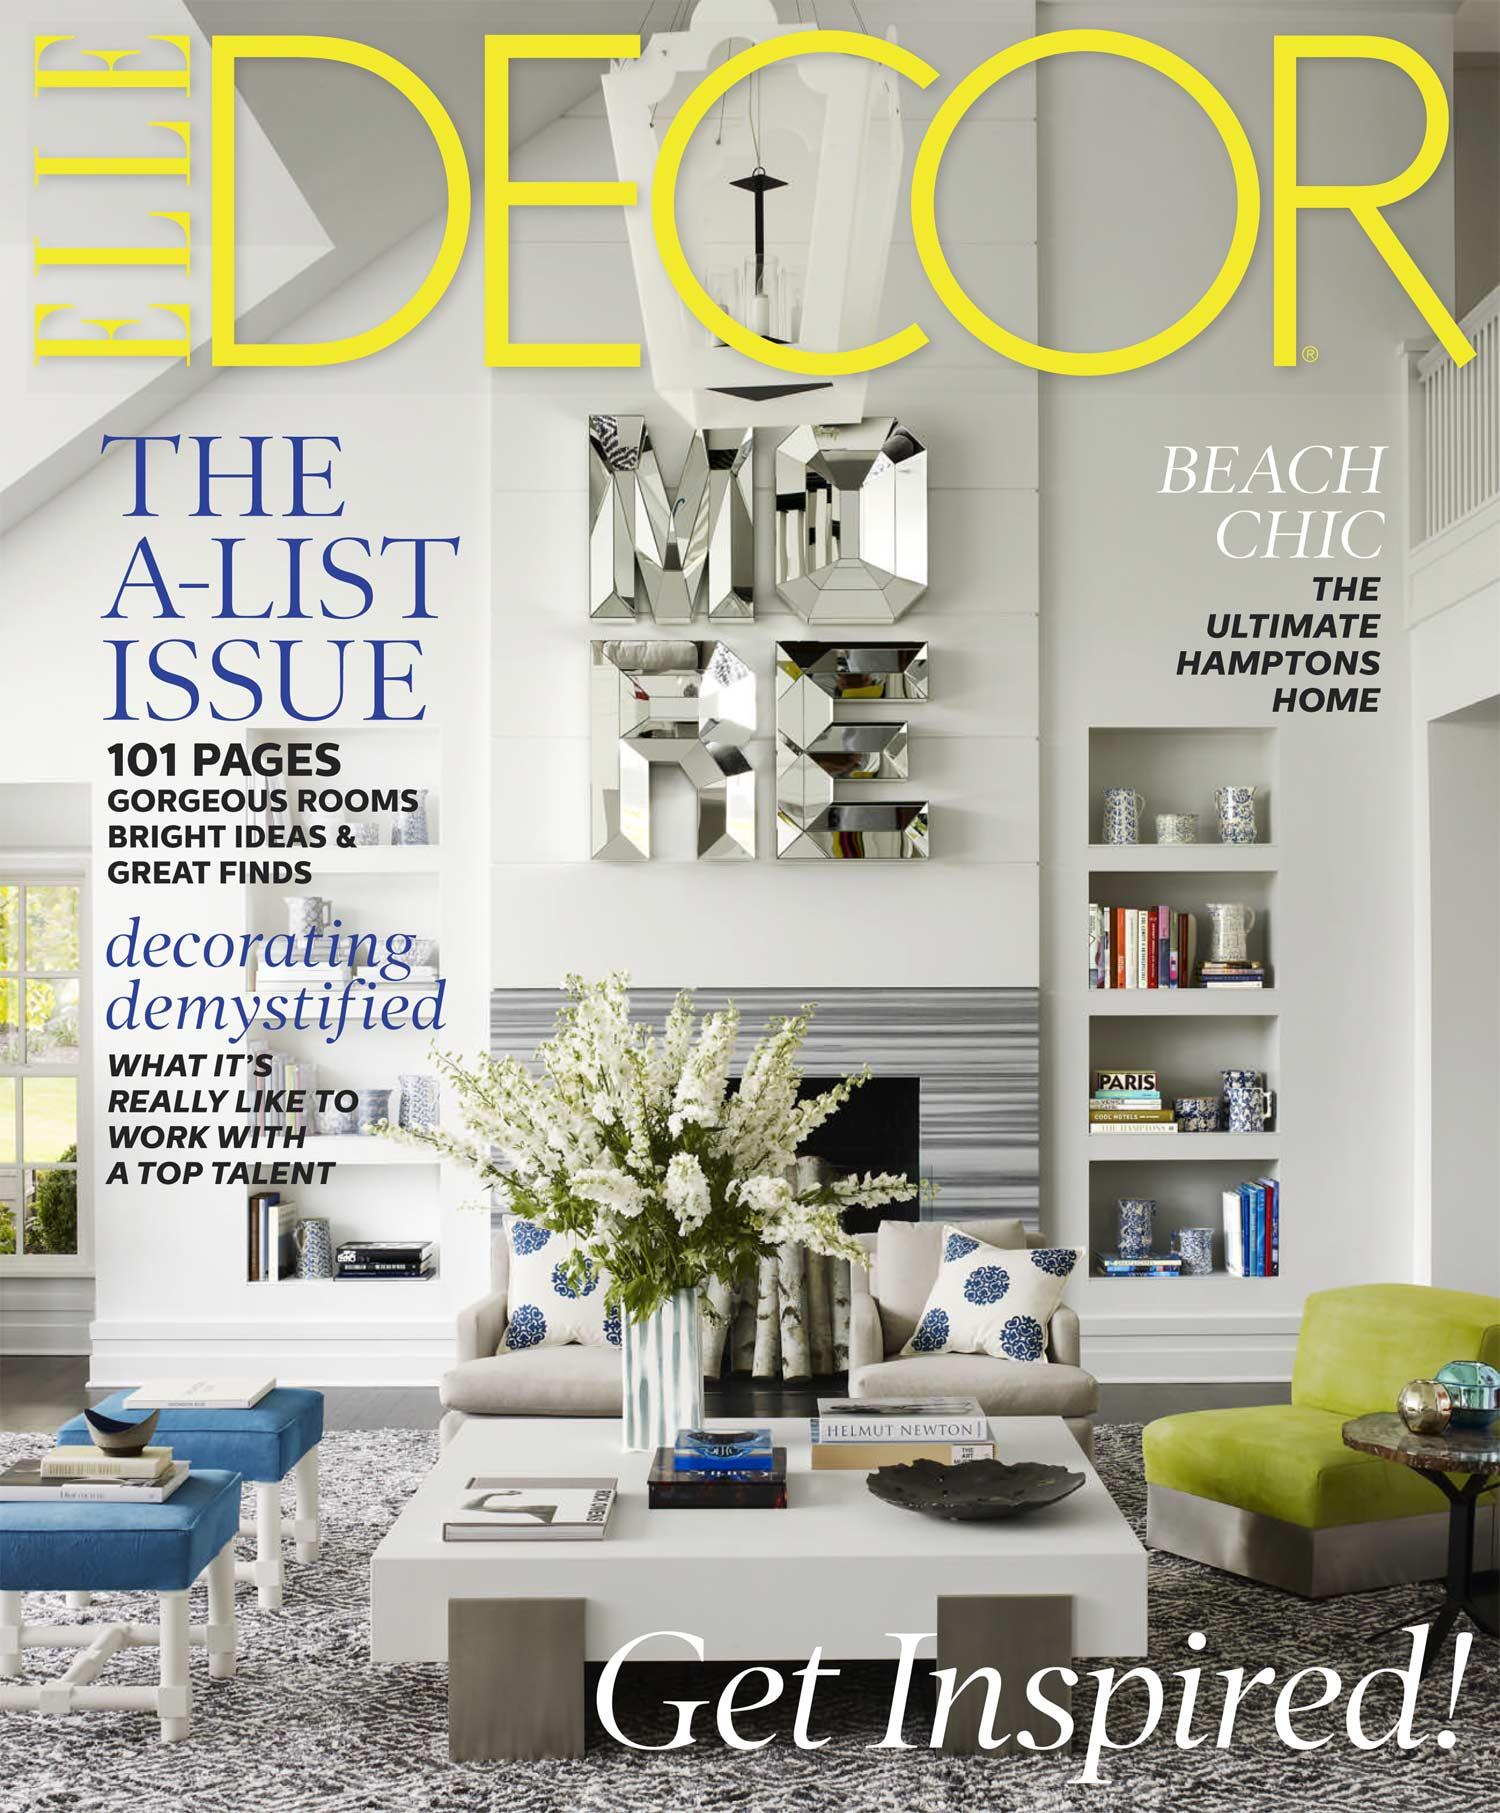 ELLE DECOR-on-newsstands-day is not a national holiday but we think it should be. Have your June issue yet? http://t.co/W9o28eJOQz